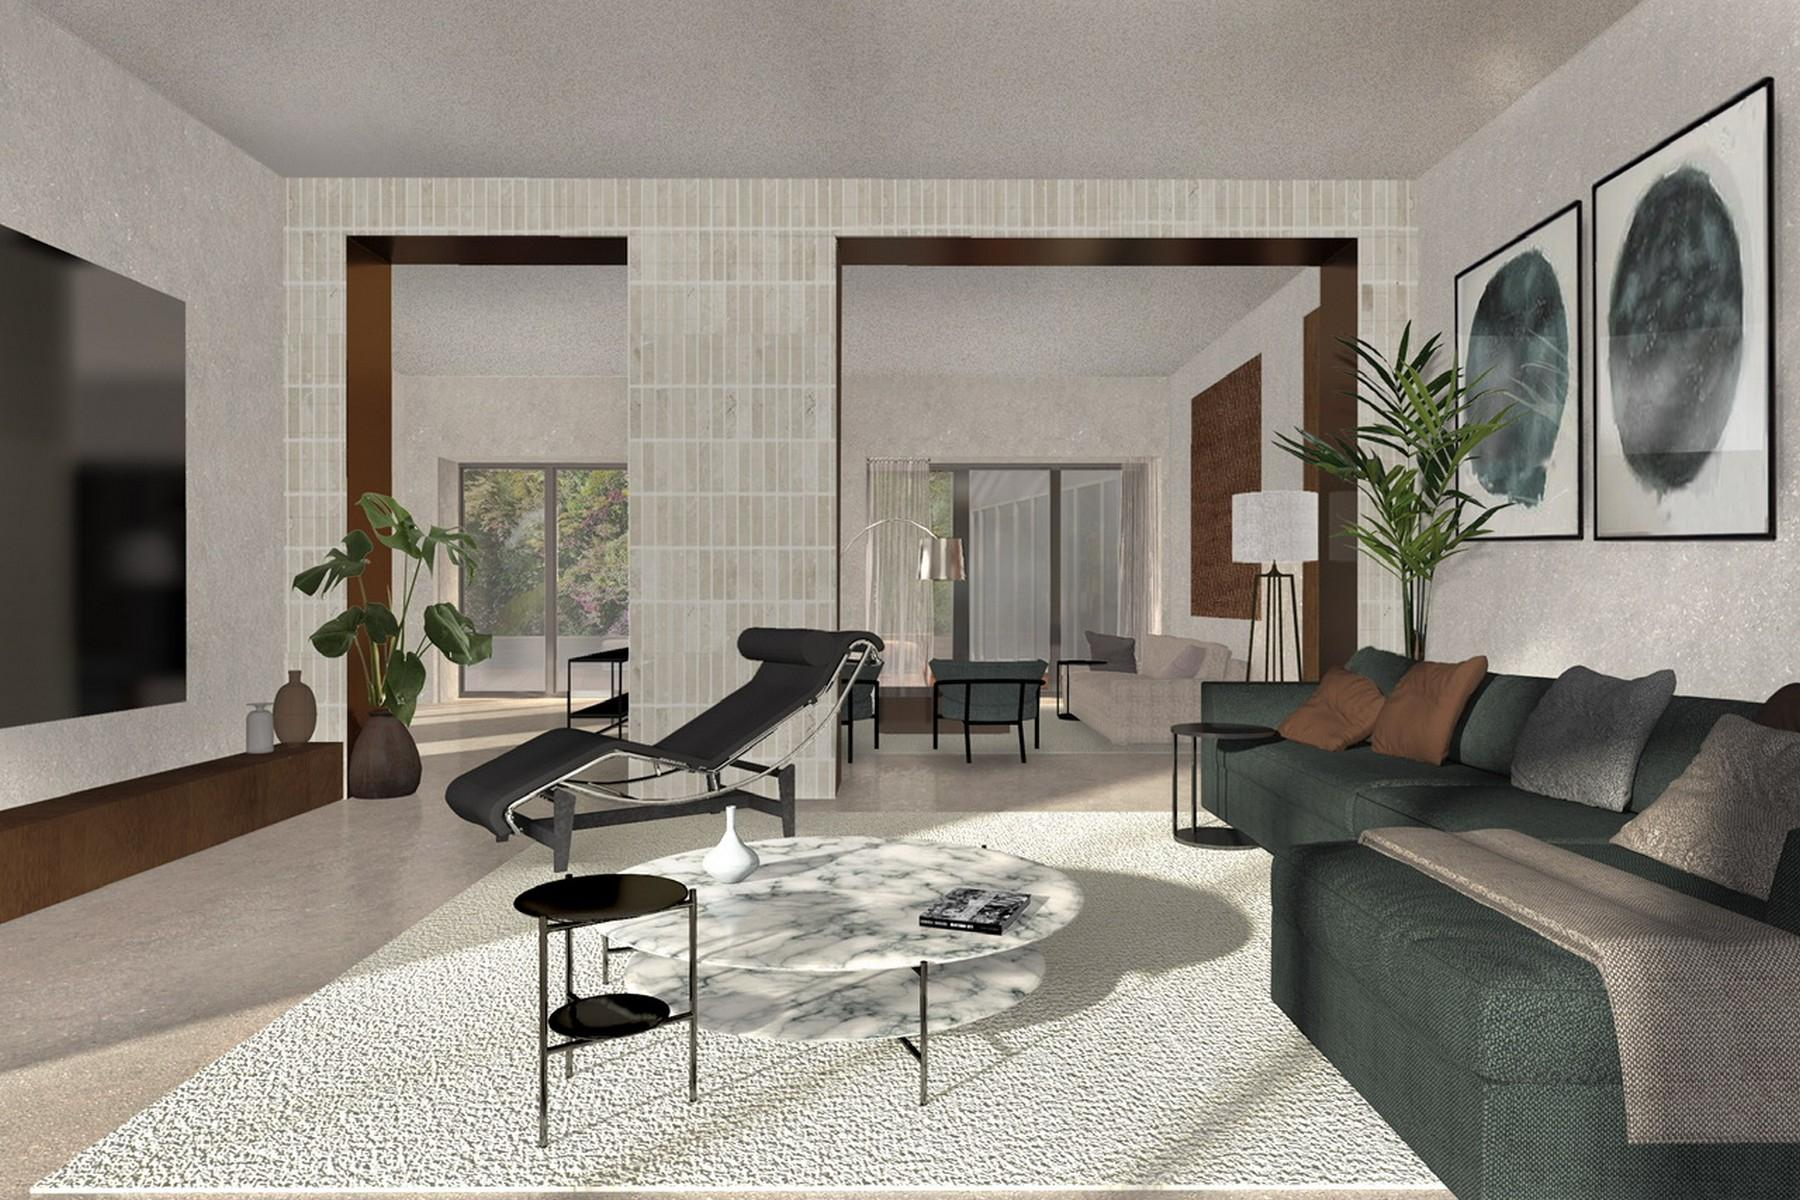 Elegant semi indipendent property of large size with private garden - 4